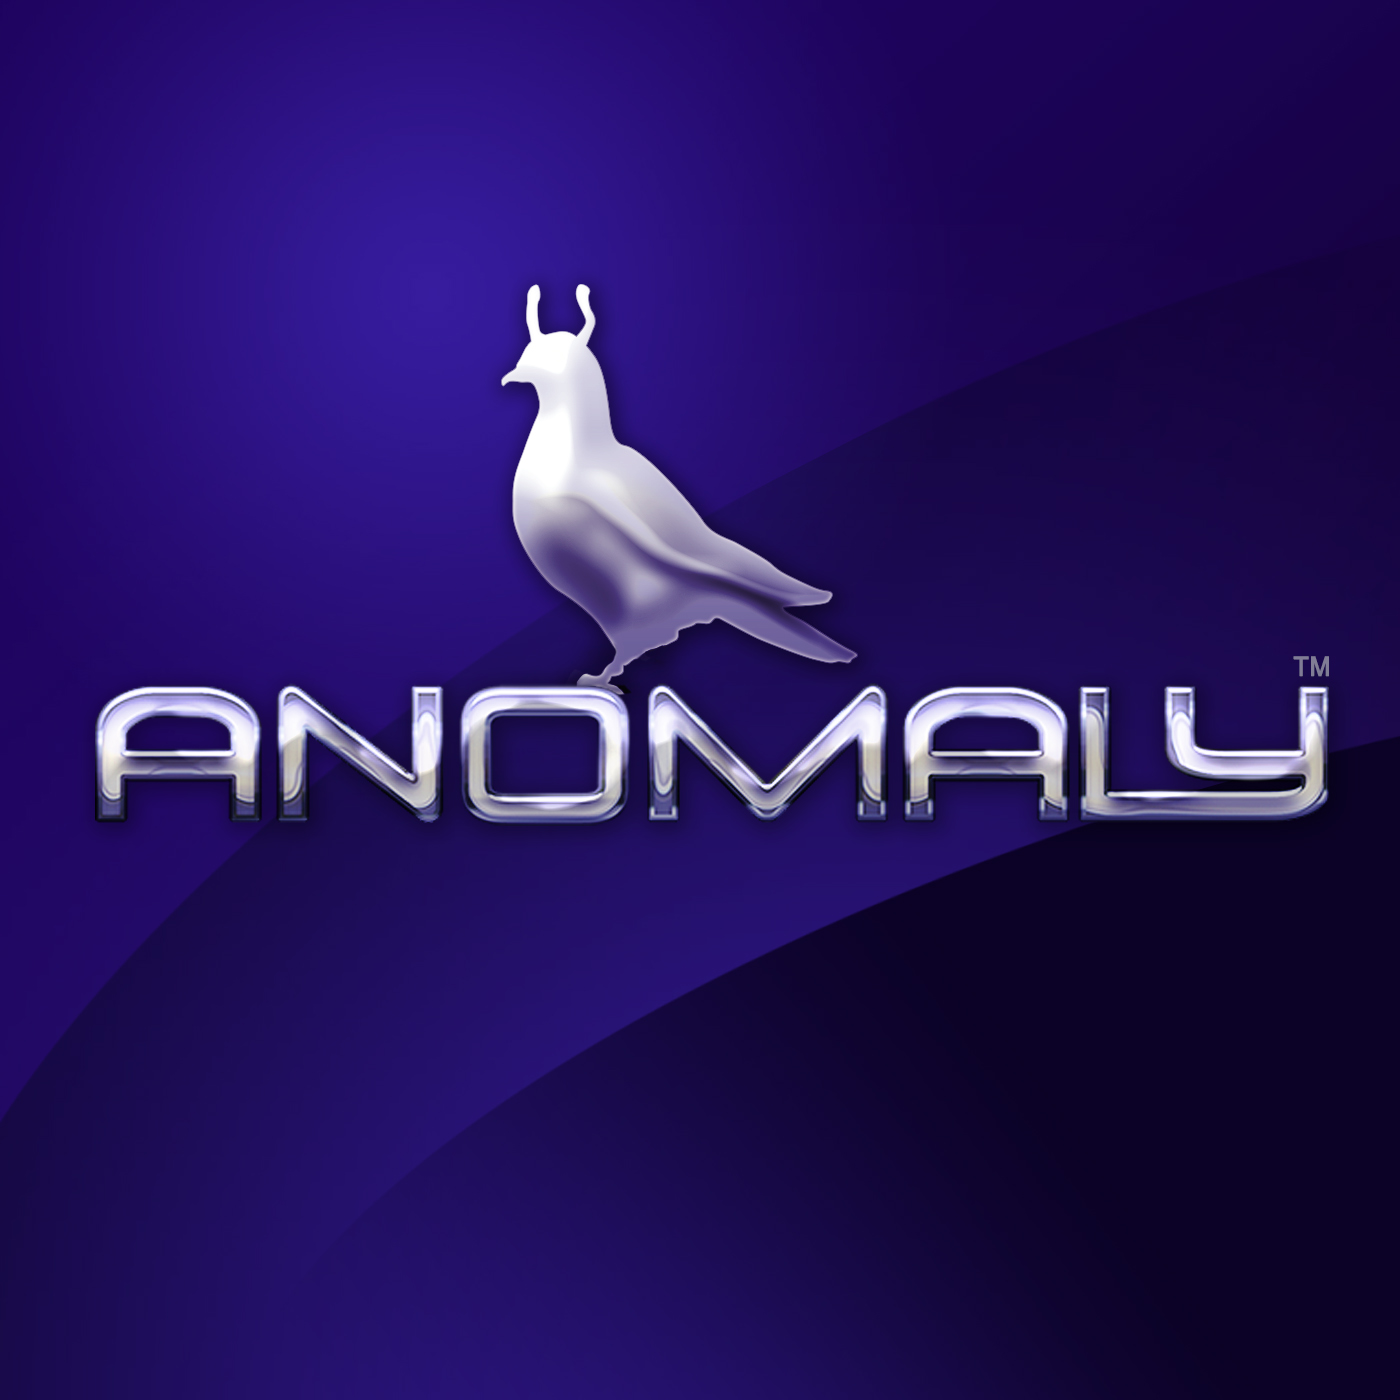 Artwork for Anomaly Christmas Movies & TV Specials